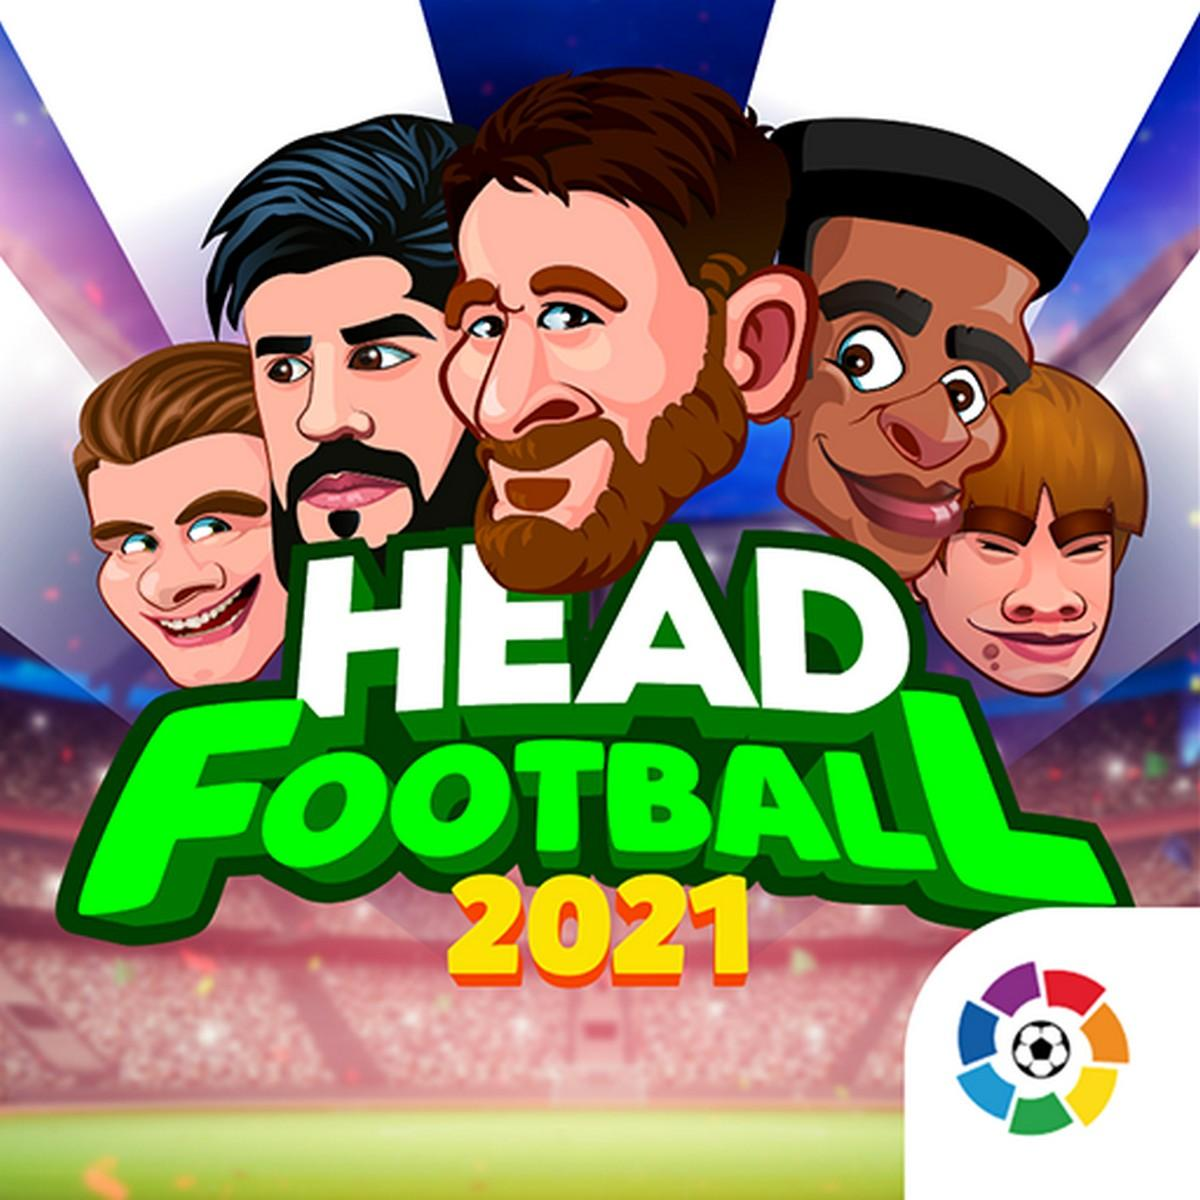 Head Football LaLiga 2021 APK MOD